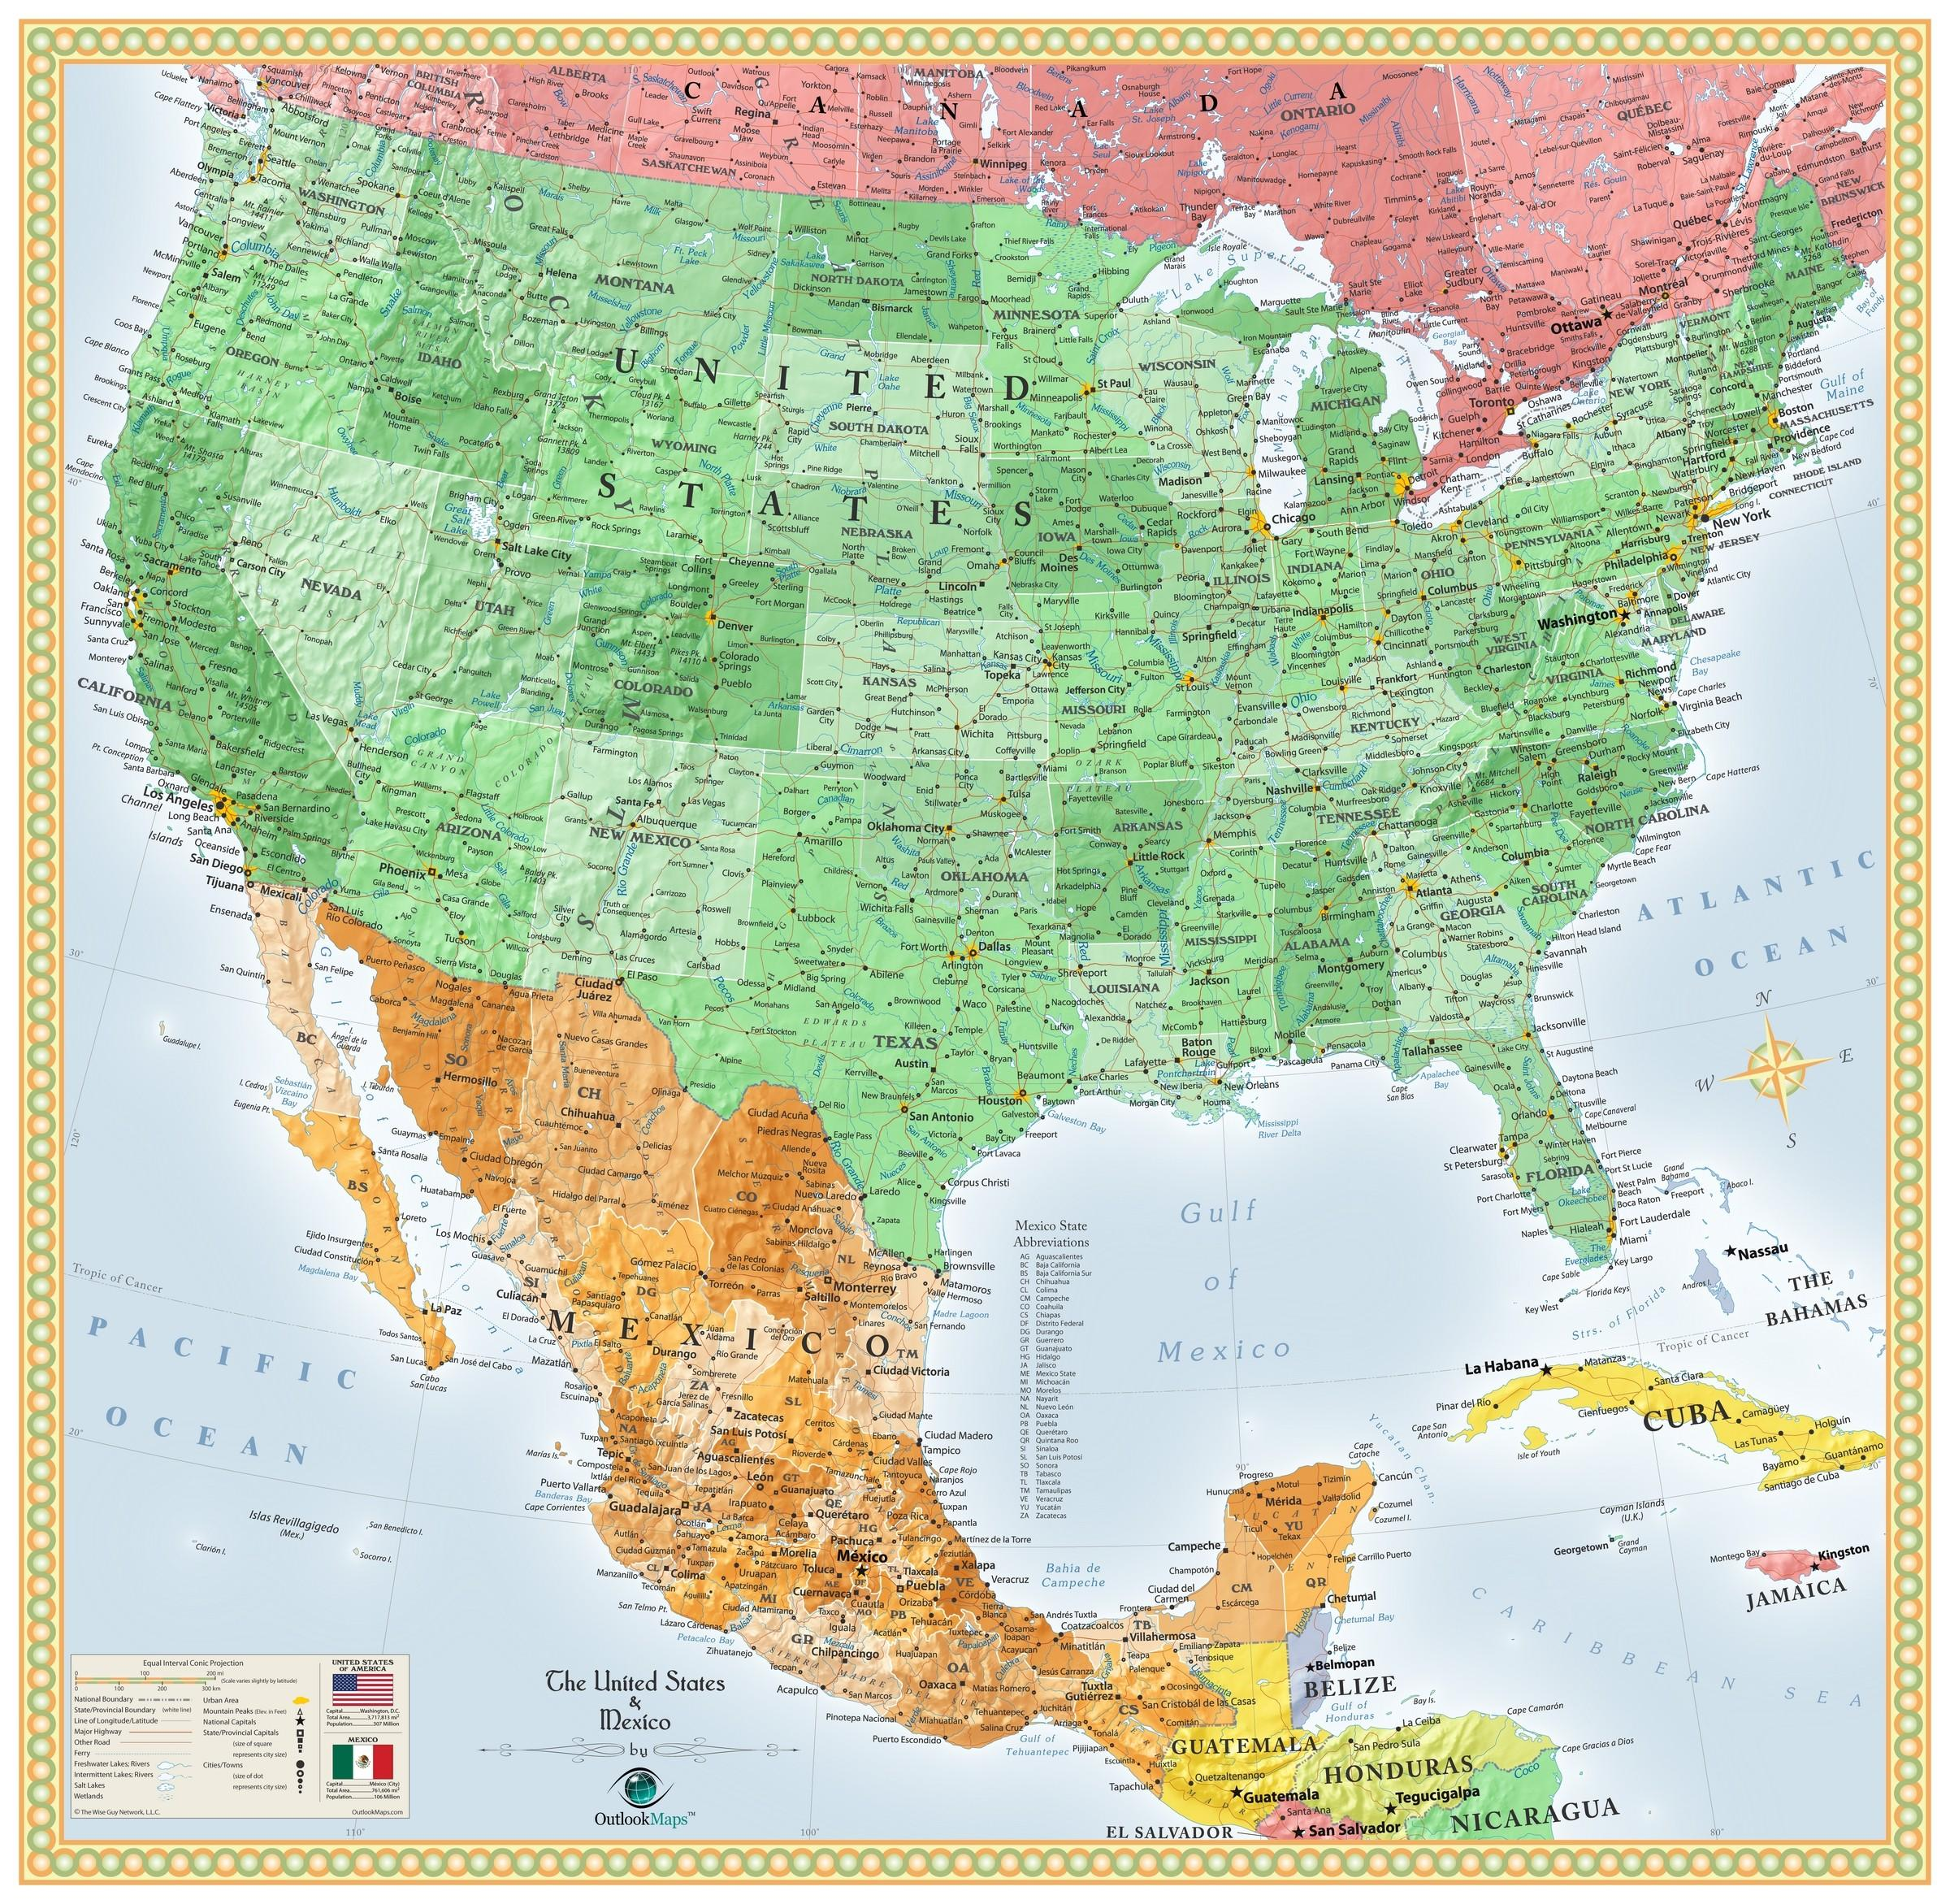 Mexico and us map - Us & Mexico map (Central America - Americas)